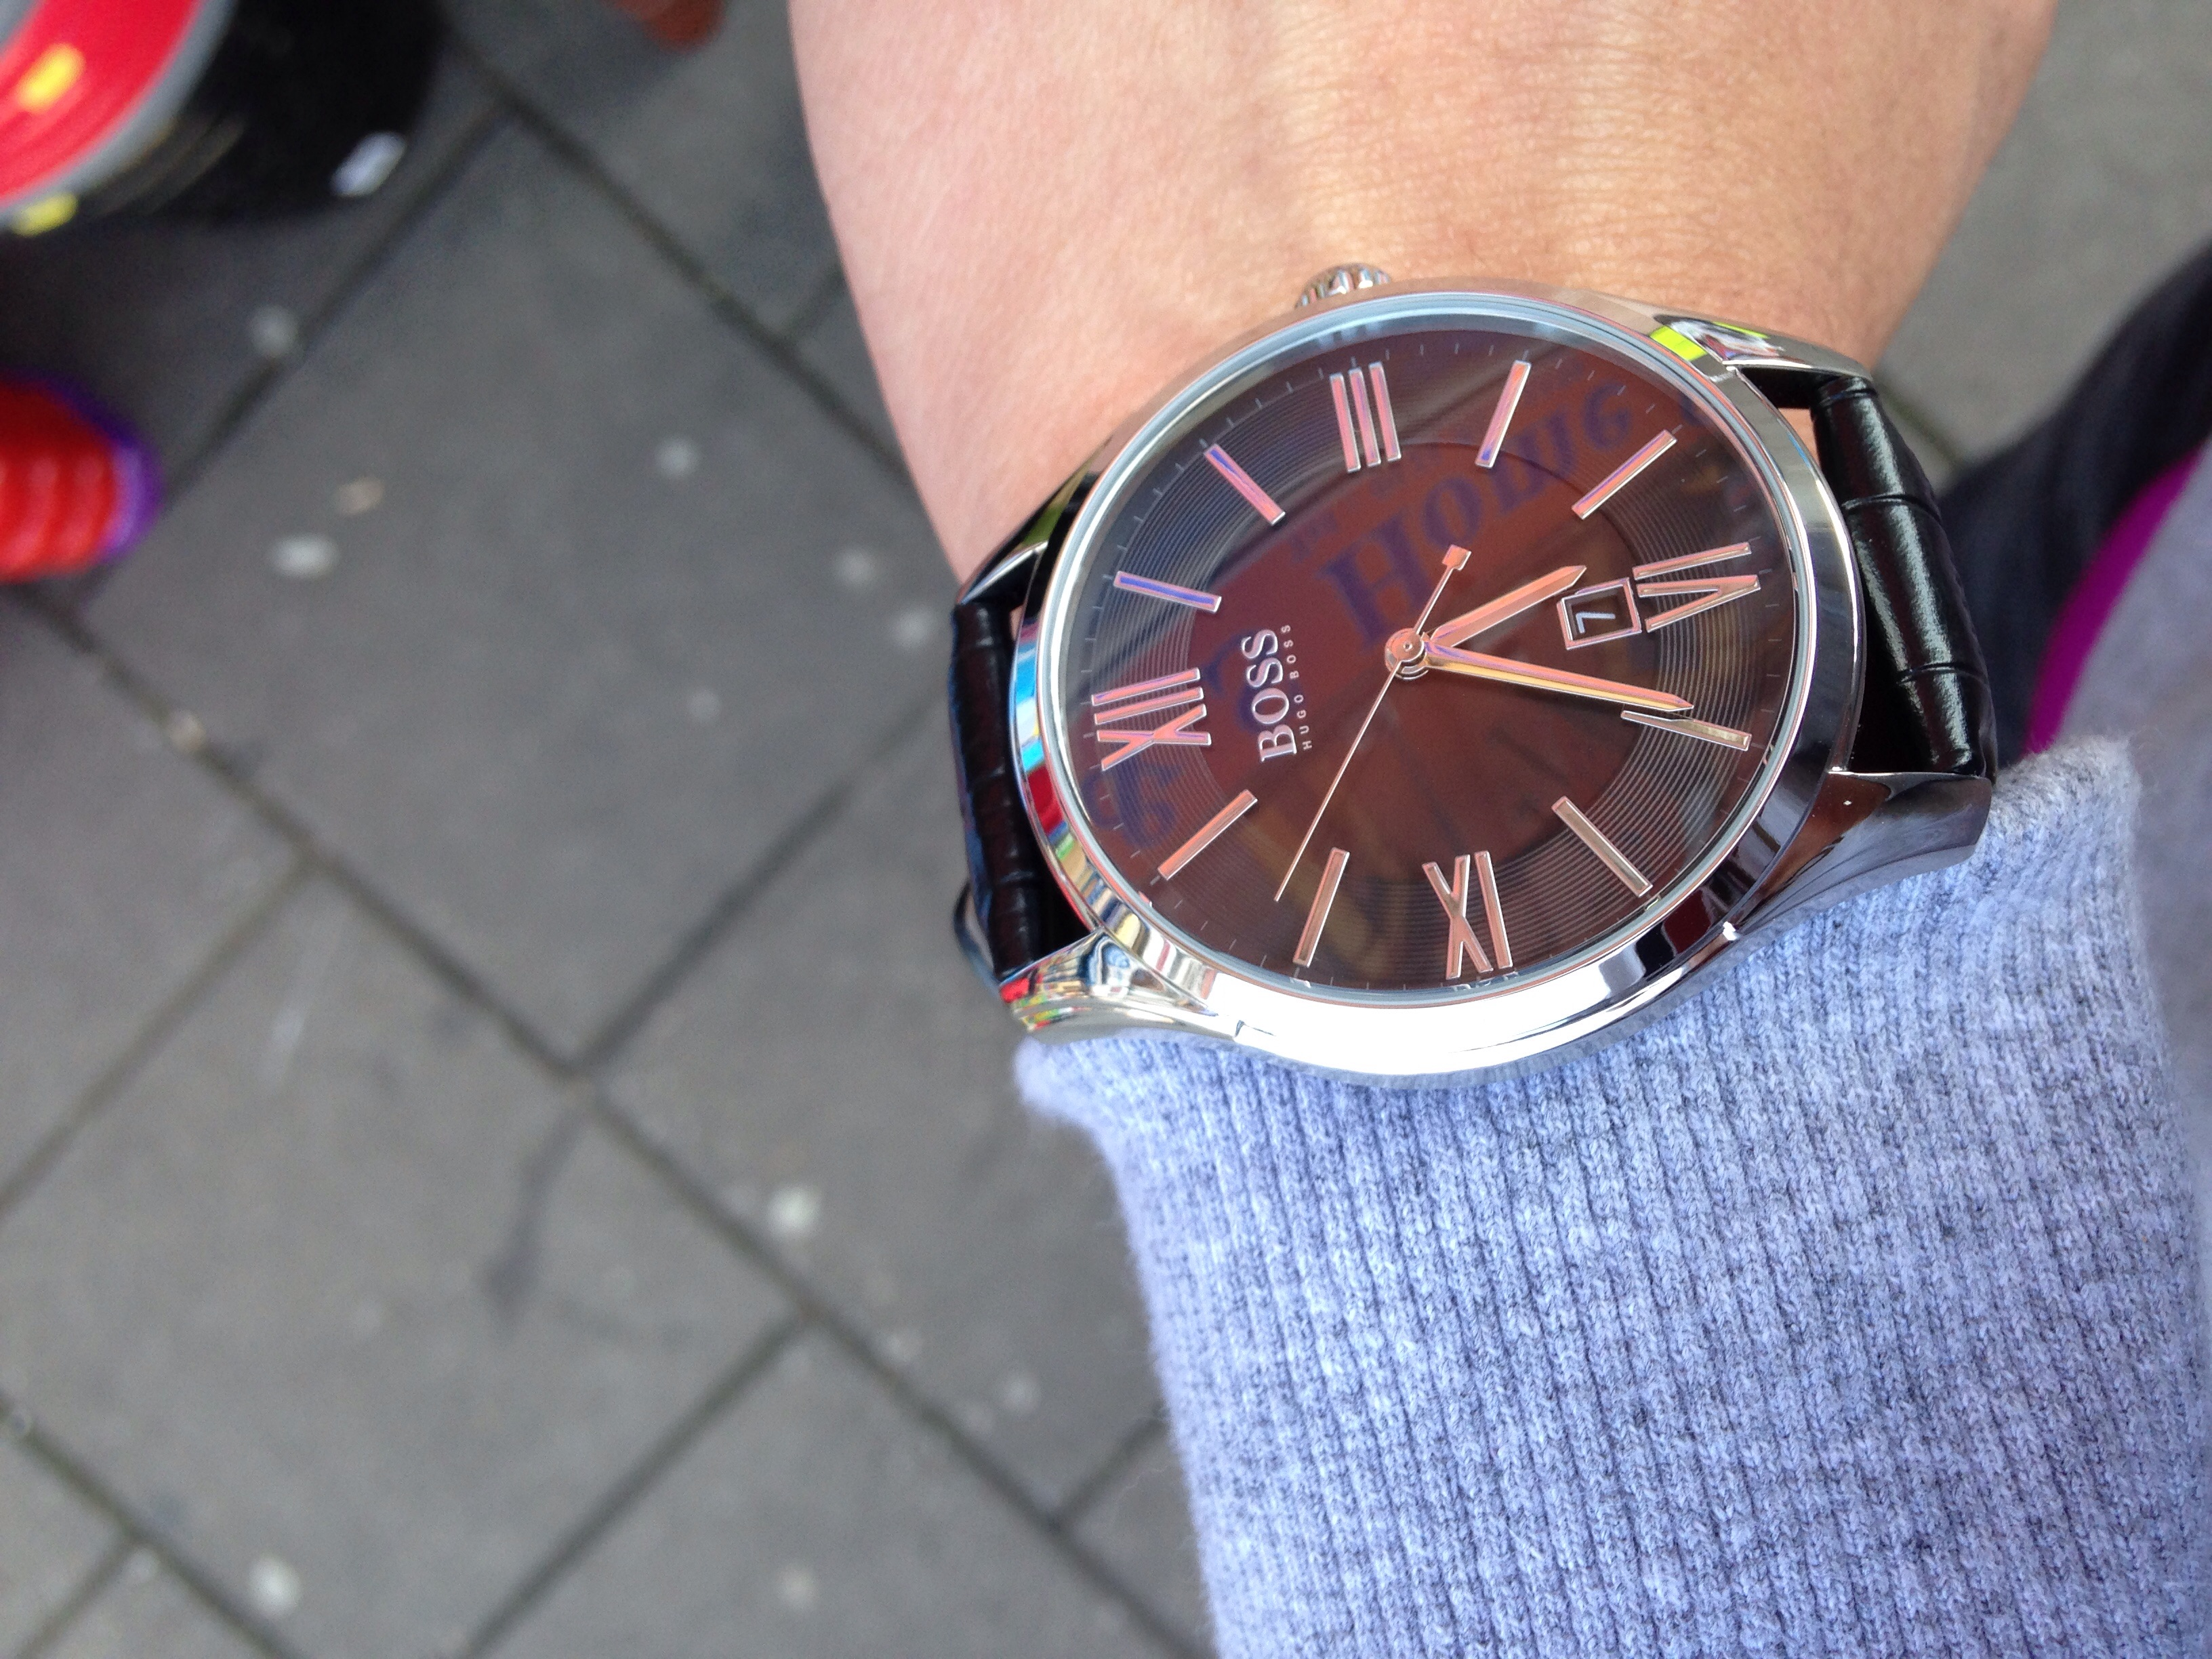 c18230e59e8d I have owned this watch for 2 months now. Honestly a brilliant watch